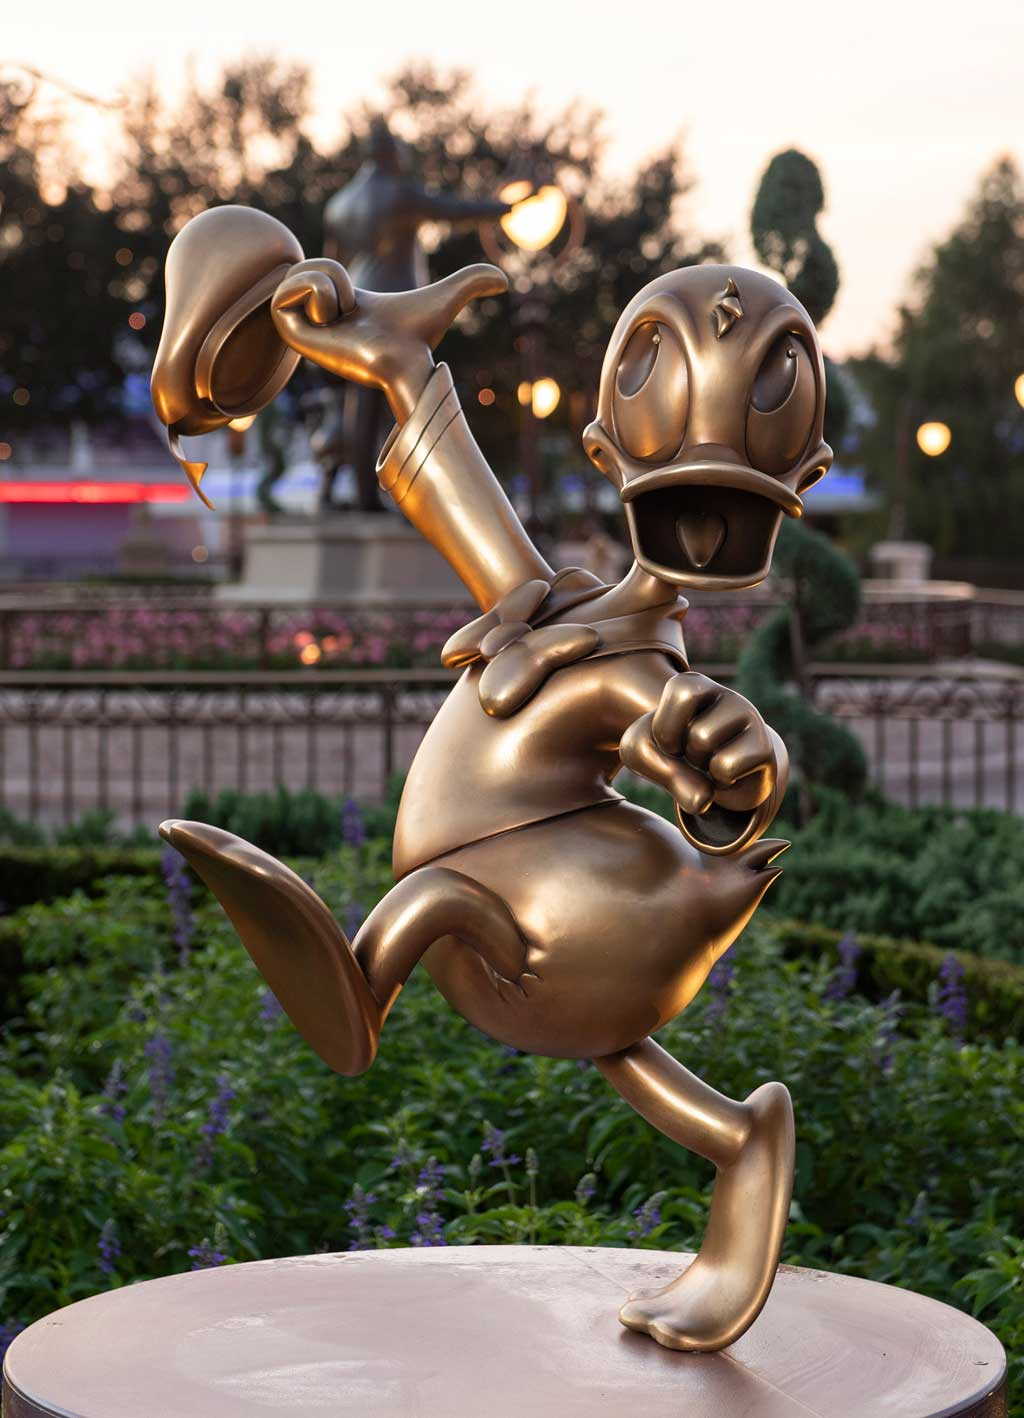 """Donald Duck at Magic Kingdom Park is one of the """"Disney Fab 50"""" golden character sculptures appearing in all four Walt Disney World Resort theme parks in Lake Buena Vista, Fla., as part of """"The World's Most Magical Celebration,"""" beginning Oct. 1, 2021, in honor of the resort's 50th anniversary. (David Roark, photographer)"""